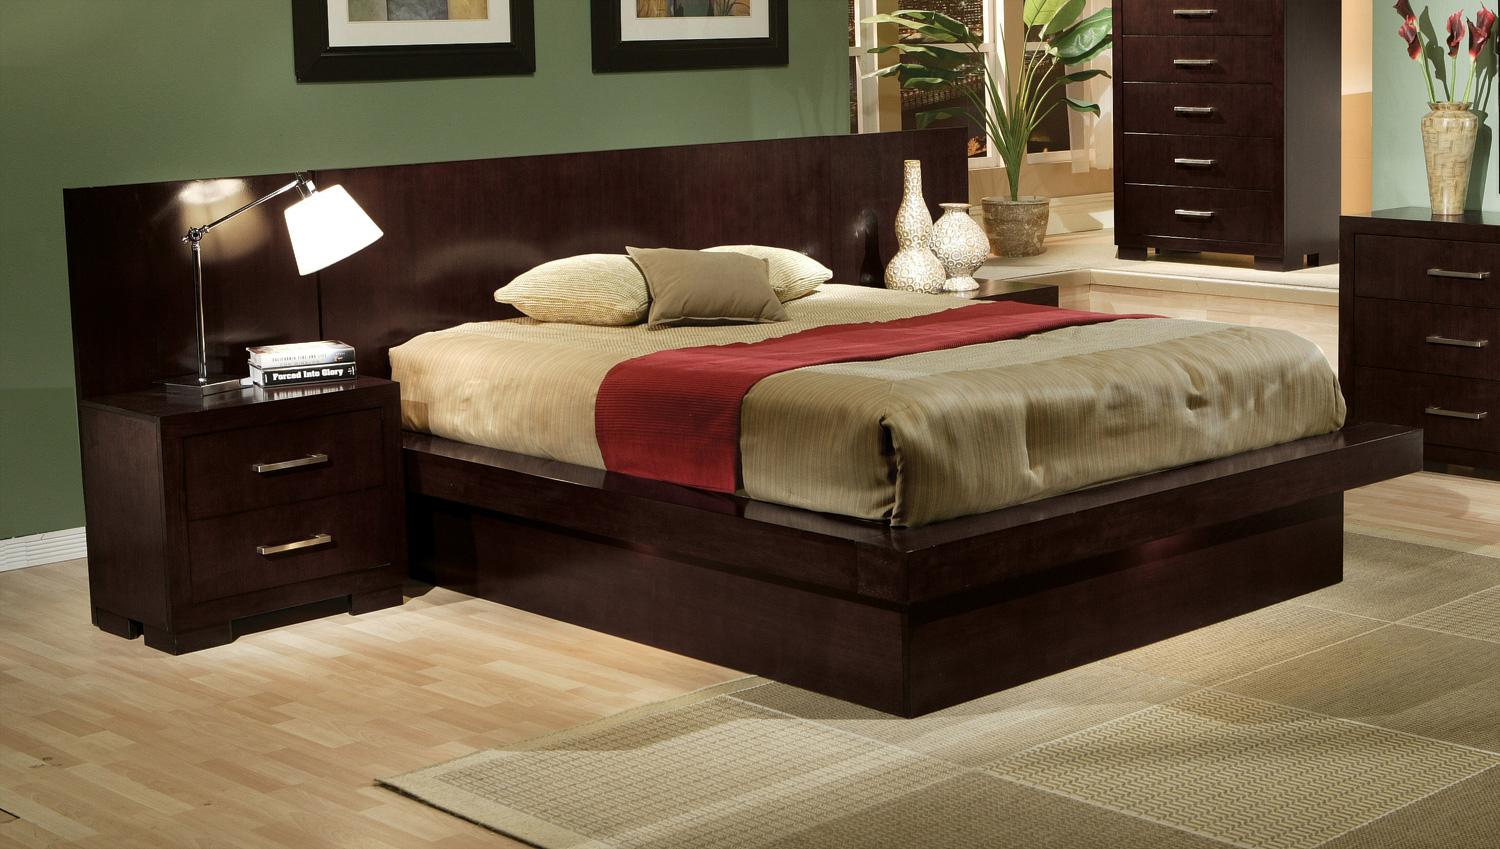 Modern Platform Bedroom Set Modern Platform Bed Queen Bedroom Arlington Va Furniture Stores